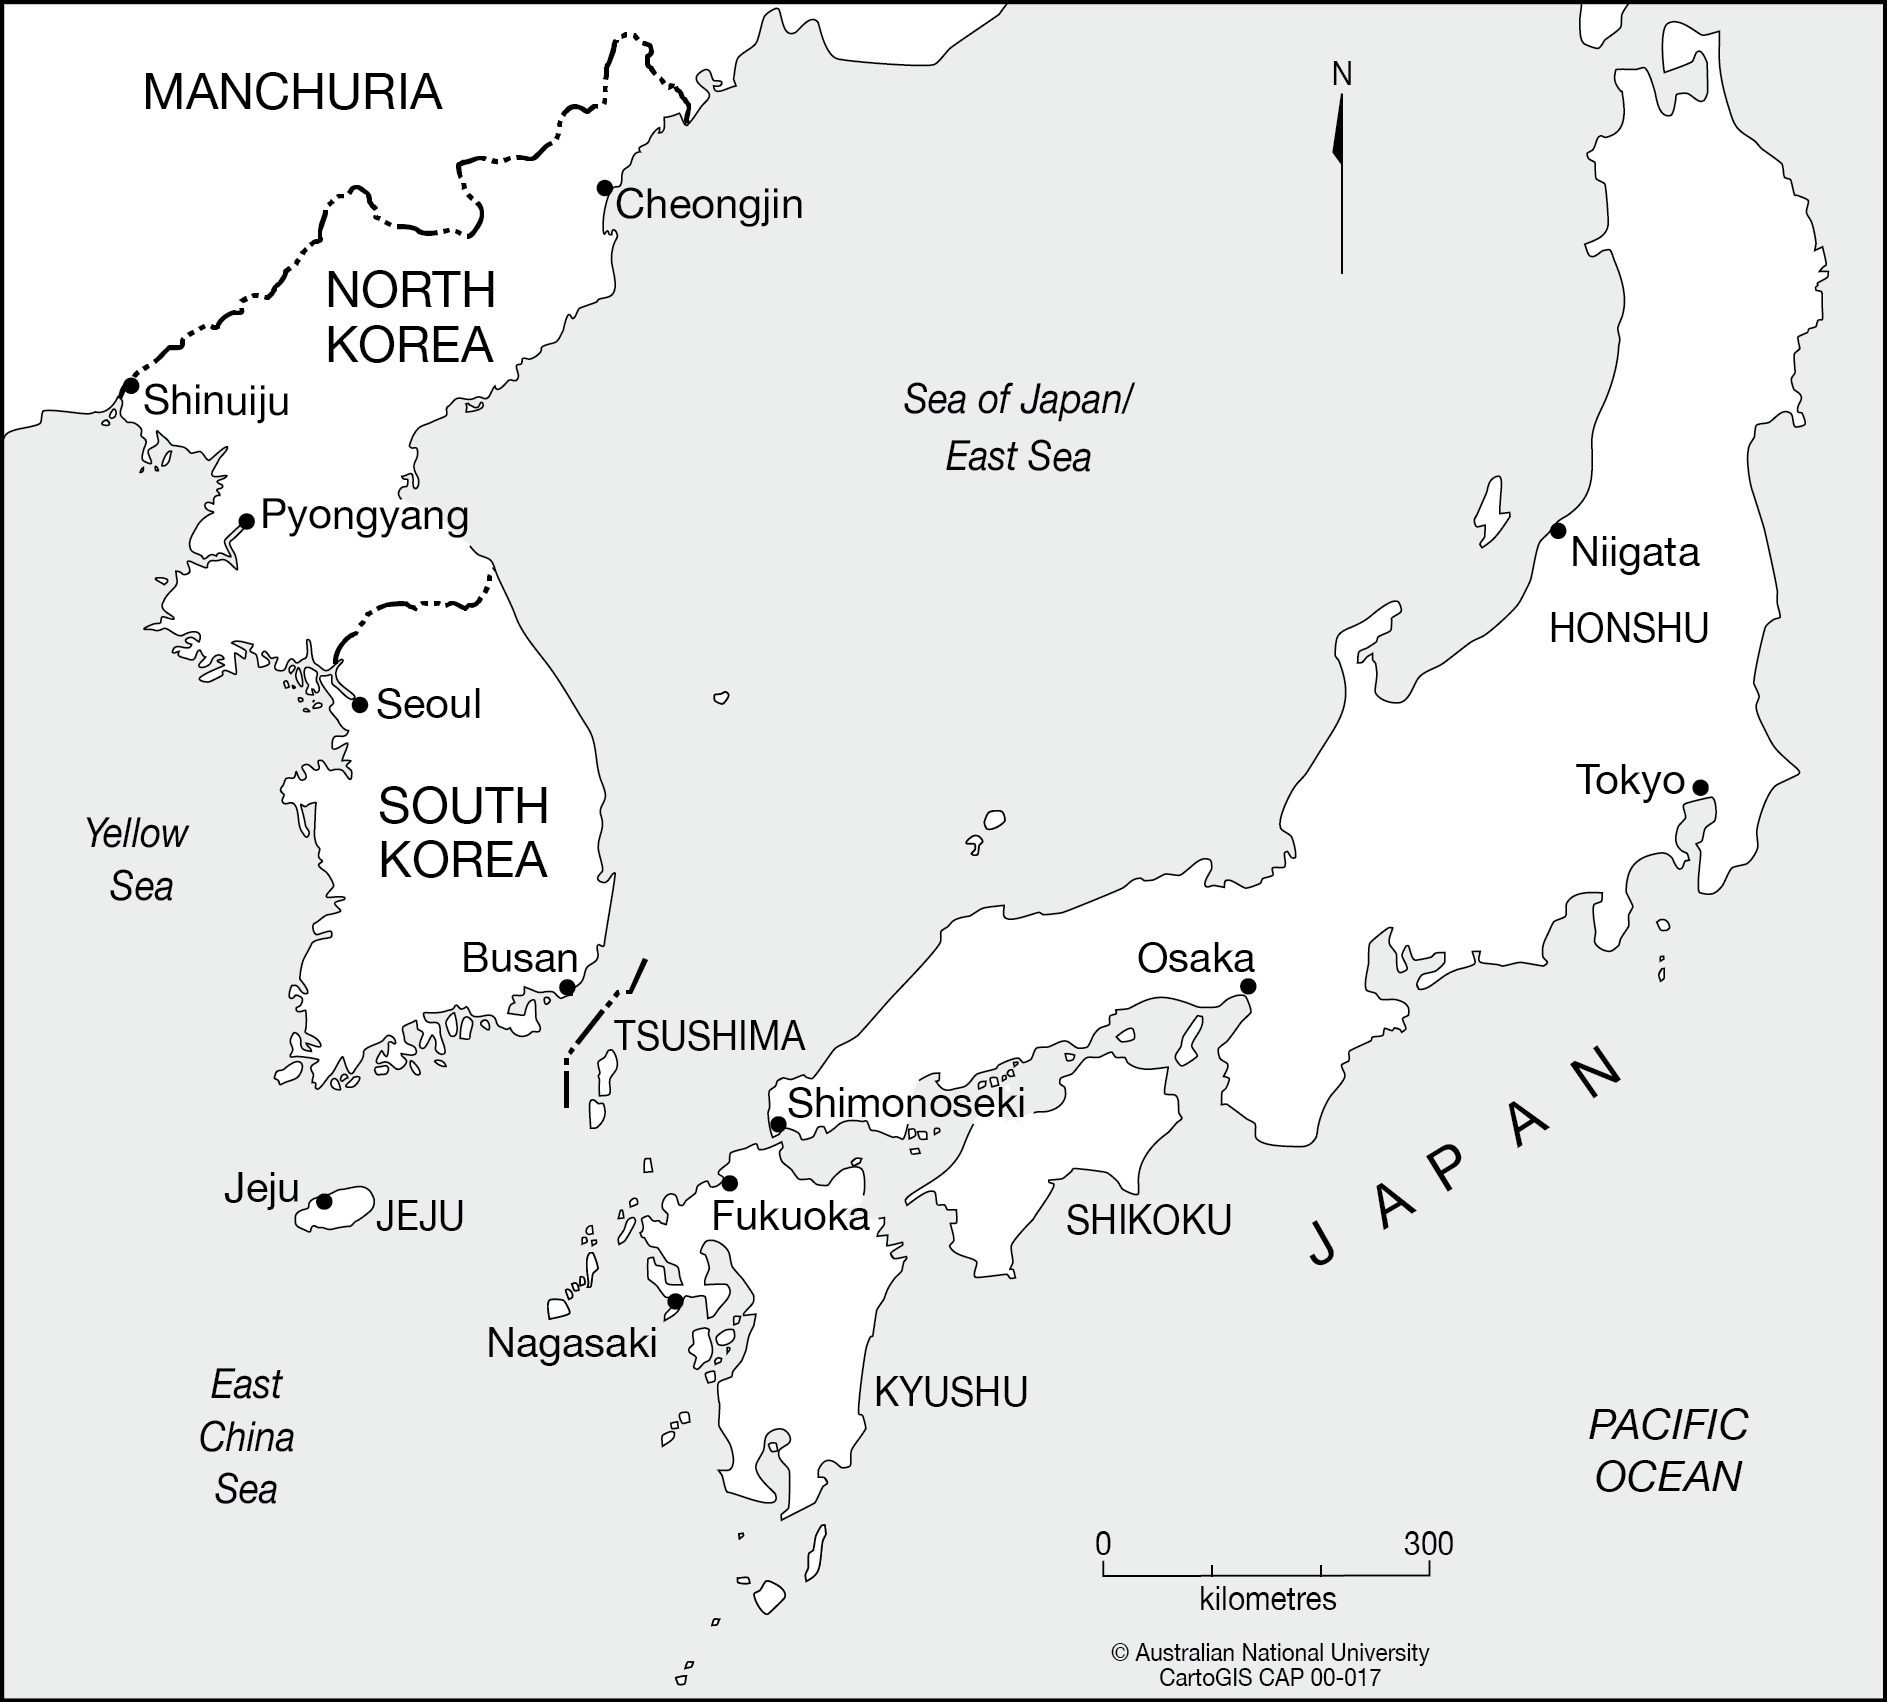 North Korea To Japan CartoGIS Services Maps Online ANU - Japan map black and white